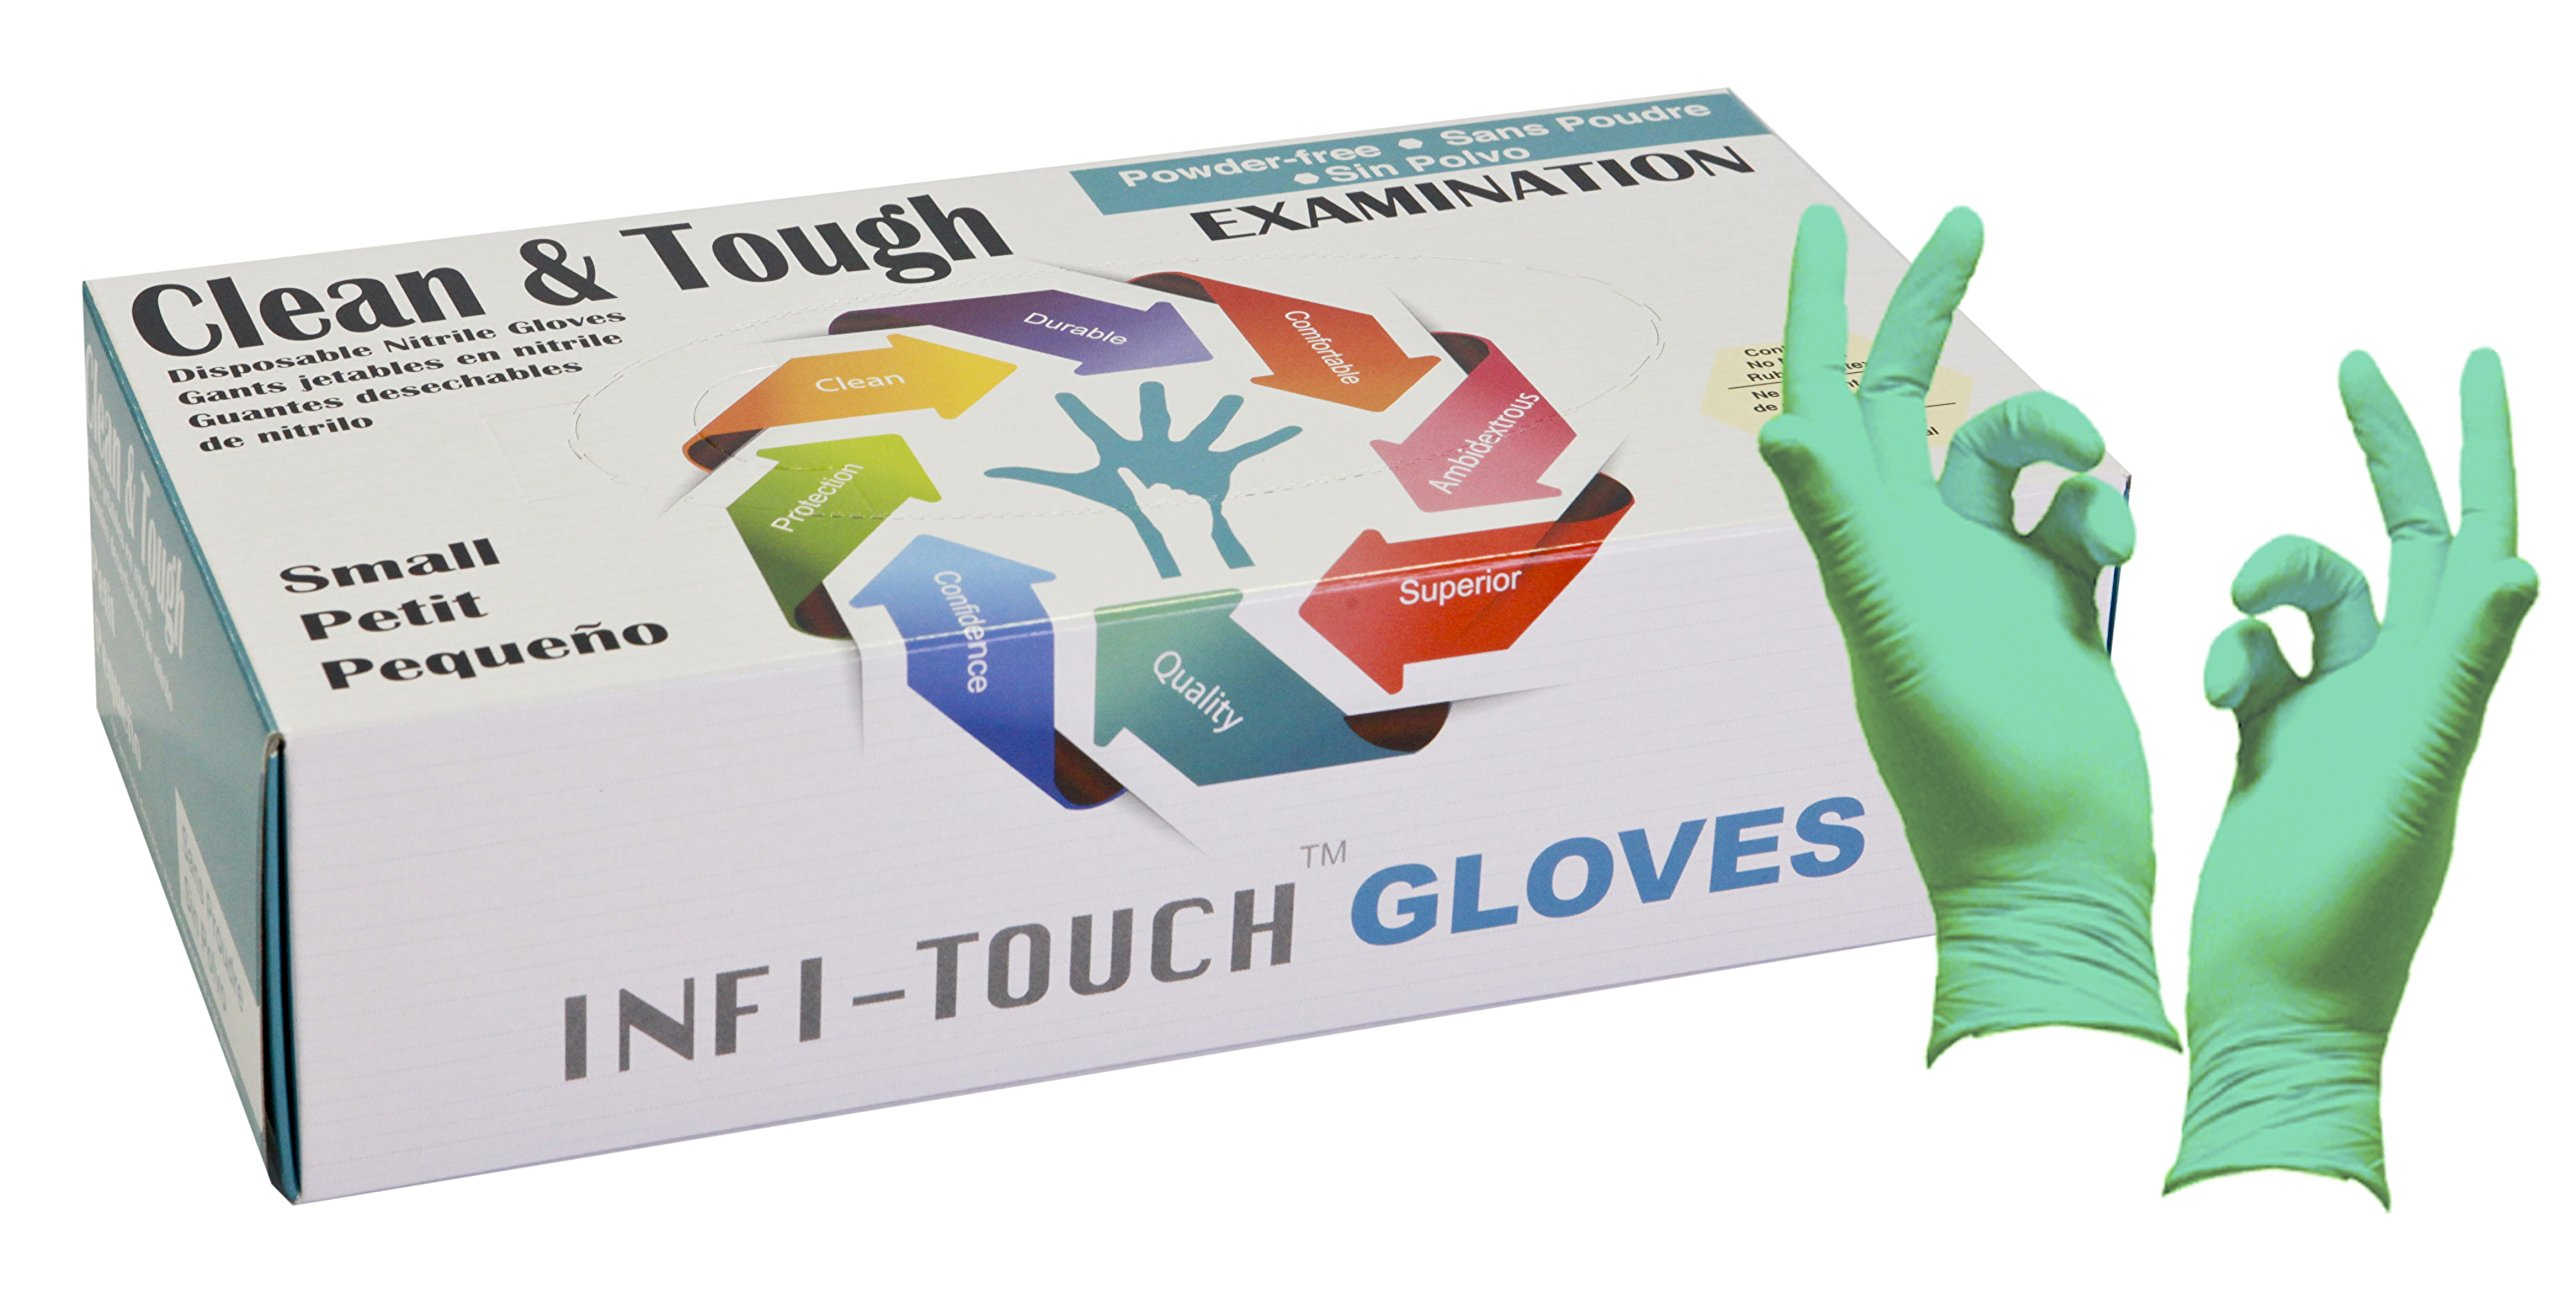 Infi-touch, Clean and Tough Examination Gloves, Powder Free and Residue Free Nitrile Gloves, Green Gloves, 9.5'' Length, Powder Free, 100 Count, SMALL by Infi-Touch (Image #1)